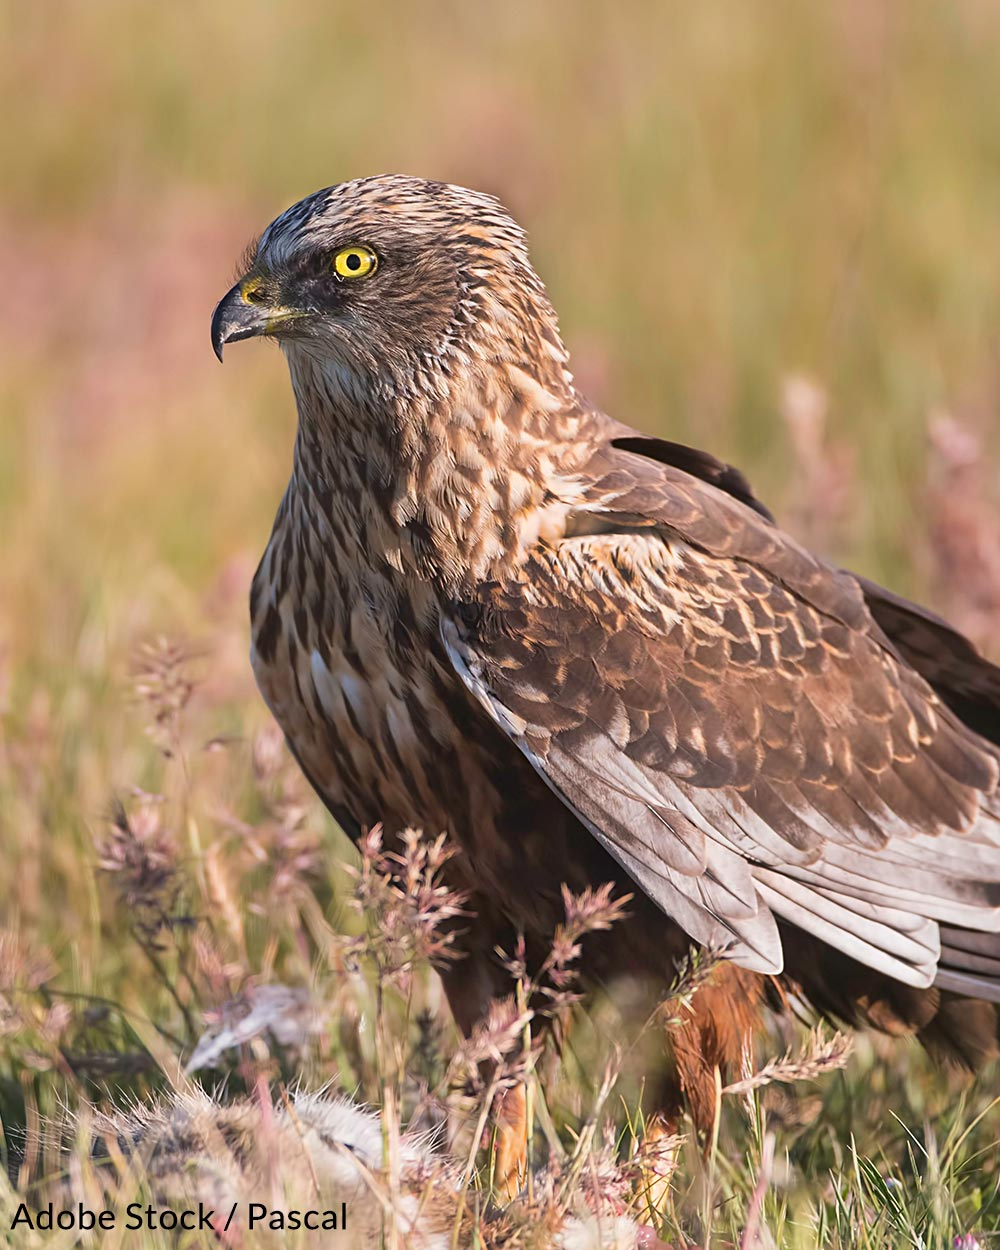 A marsh harrier on the ground looking for food.